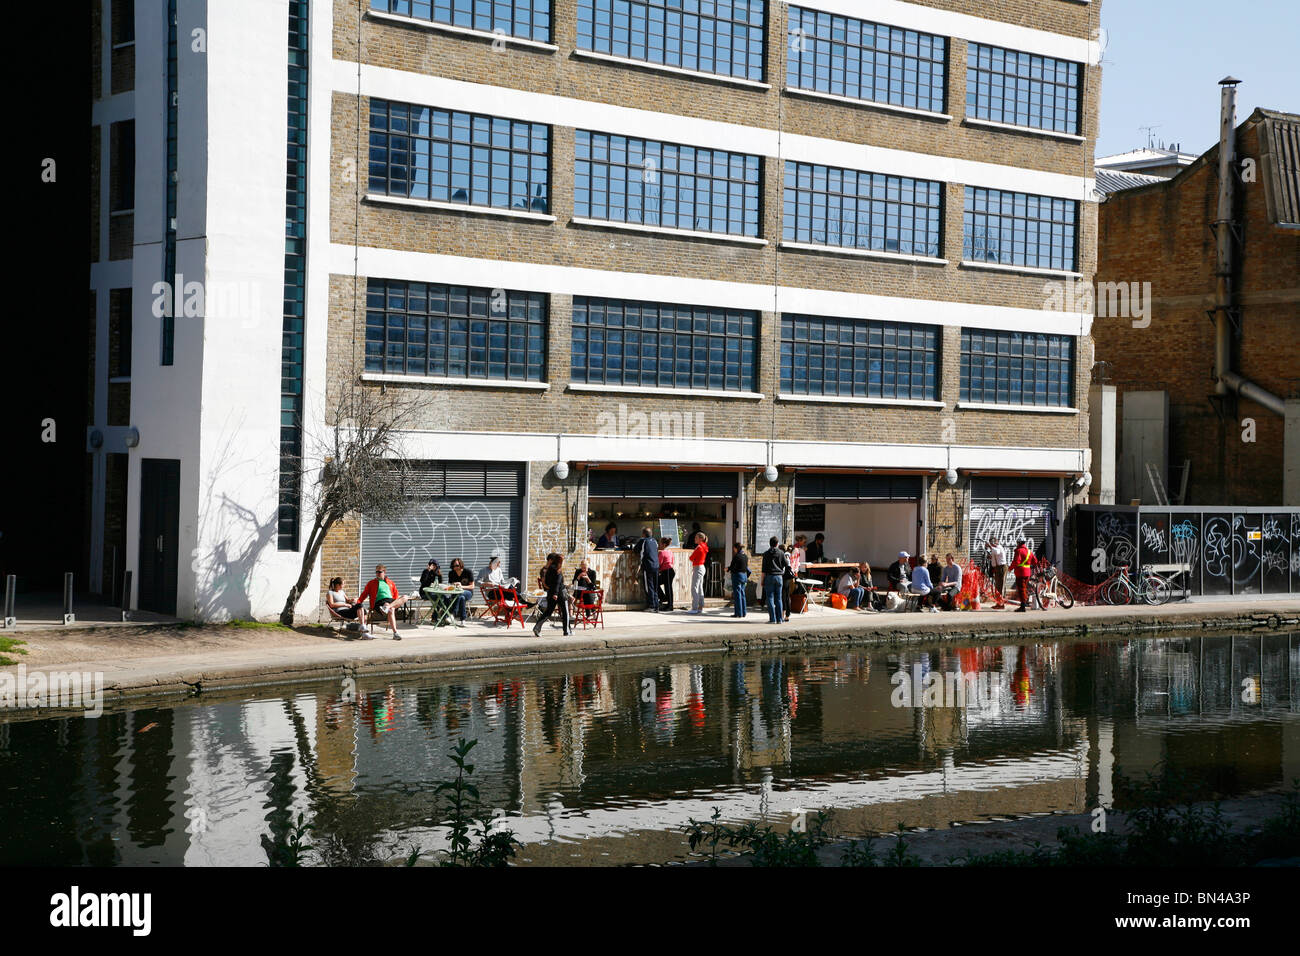 Towpath restaurant on the banks of the Regent's Canal at De Beauvoir Town, Islington, London, UK - Stock Image